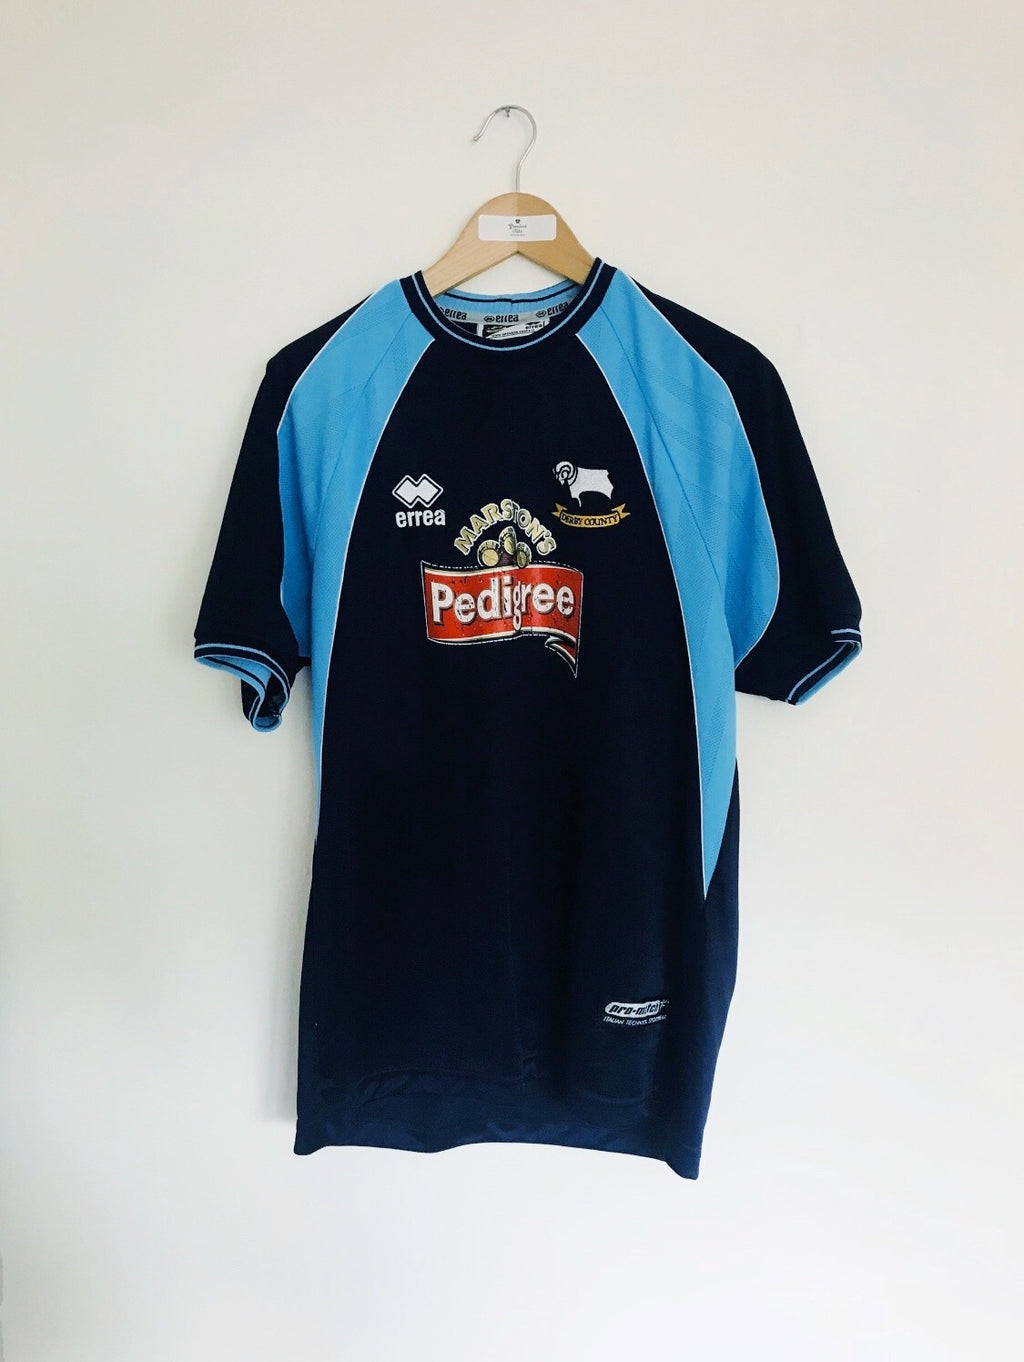 2001/03 Derby County Away Shirt (L) 6.5/10